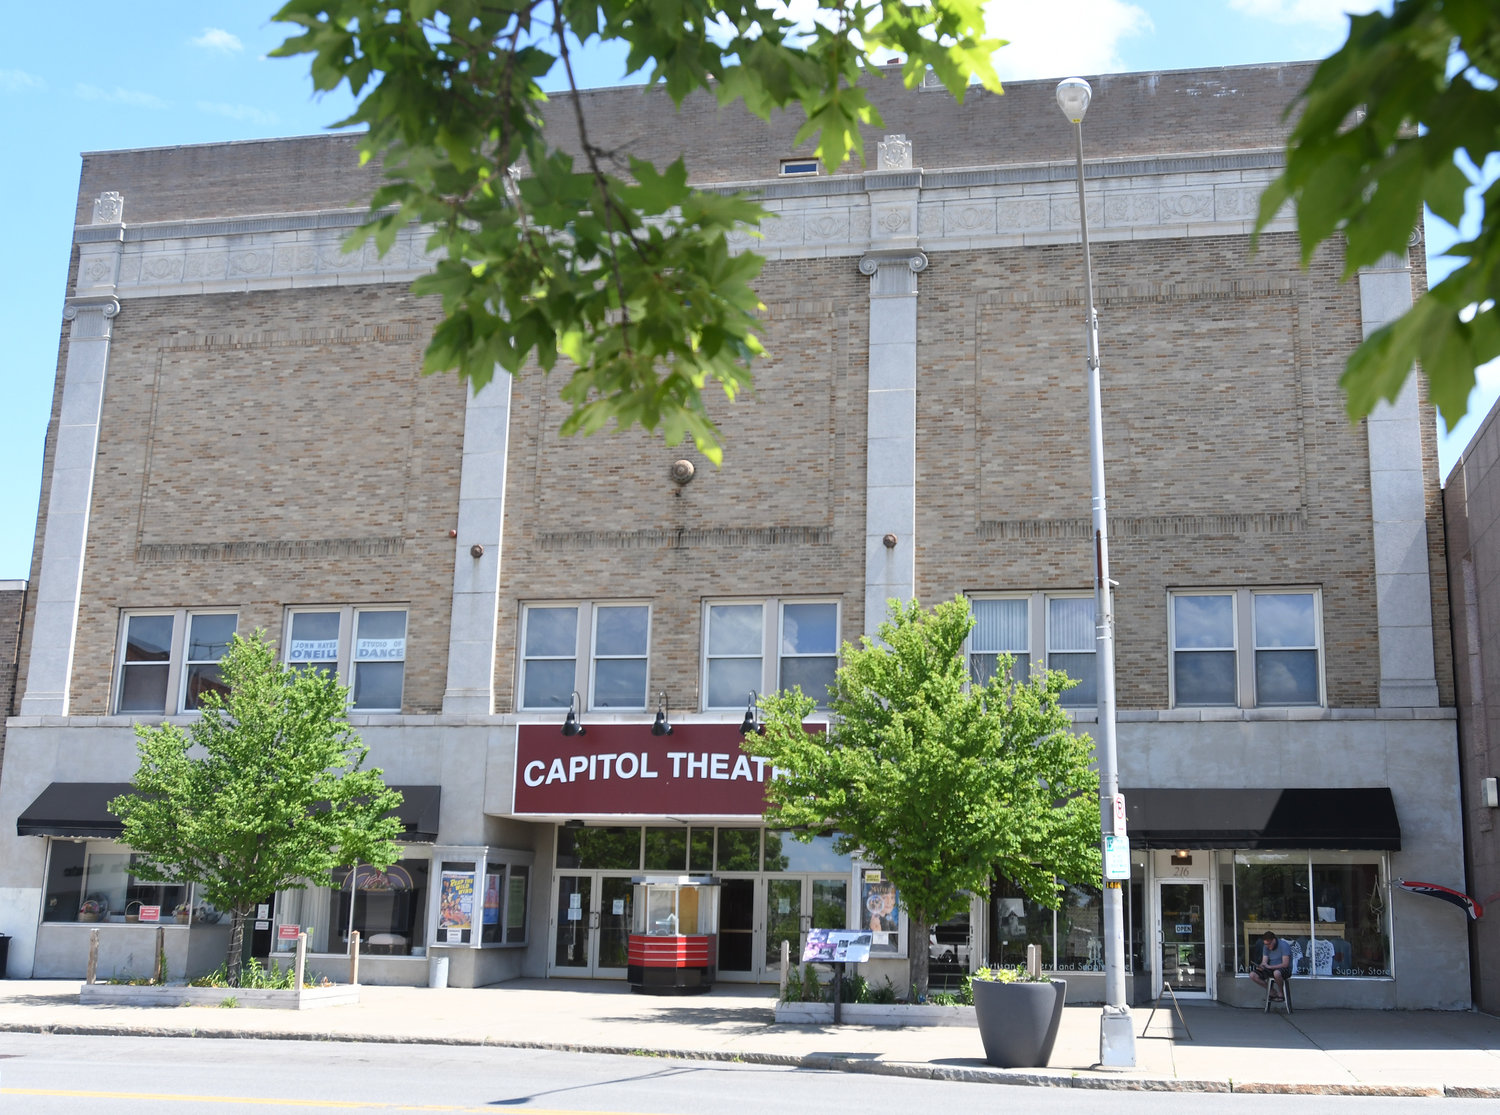 BACK TO THE FUTURE — The exterior of Capitol Theater, 220 W. Dominick St., is shown in this recent file photo. The exterior is getting a makeover, utilizing funds from the $10 million Downtown Revitalization Initiative.